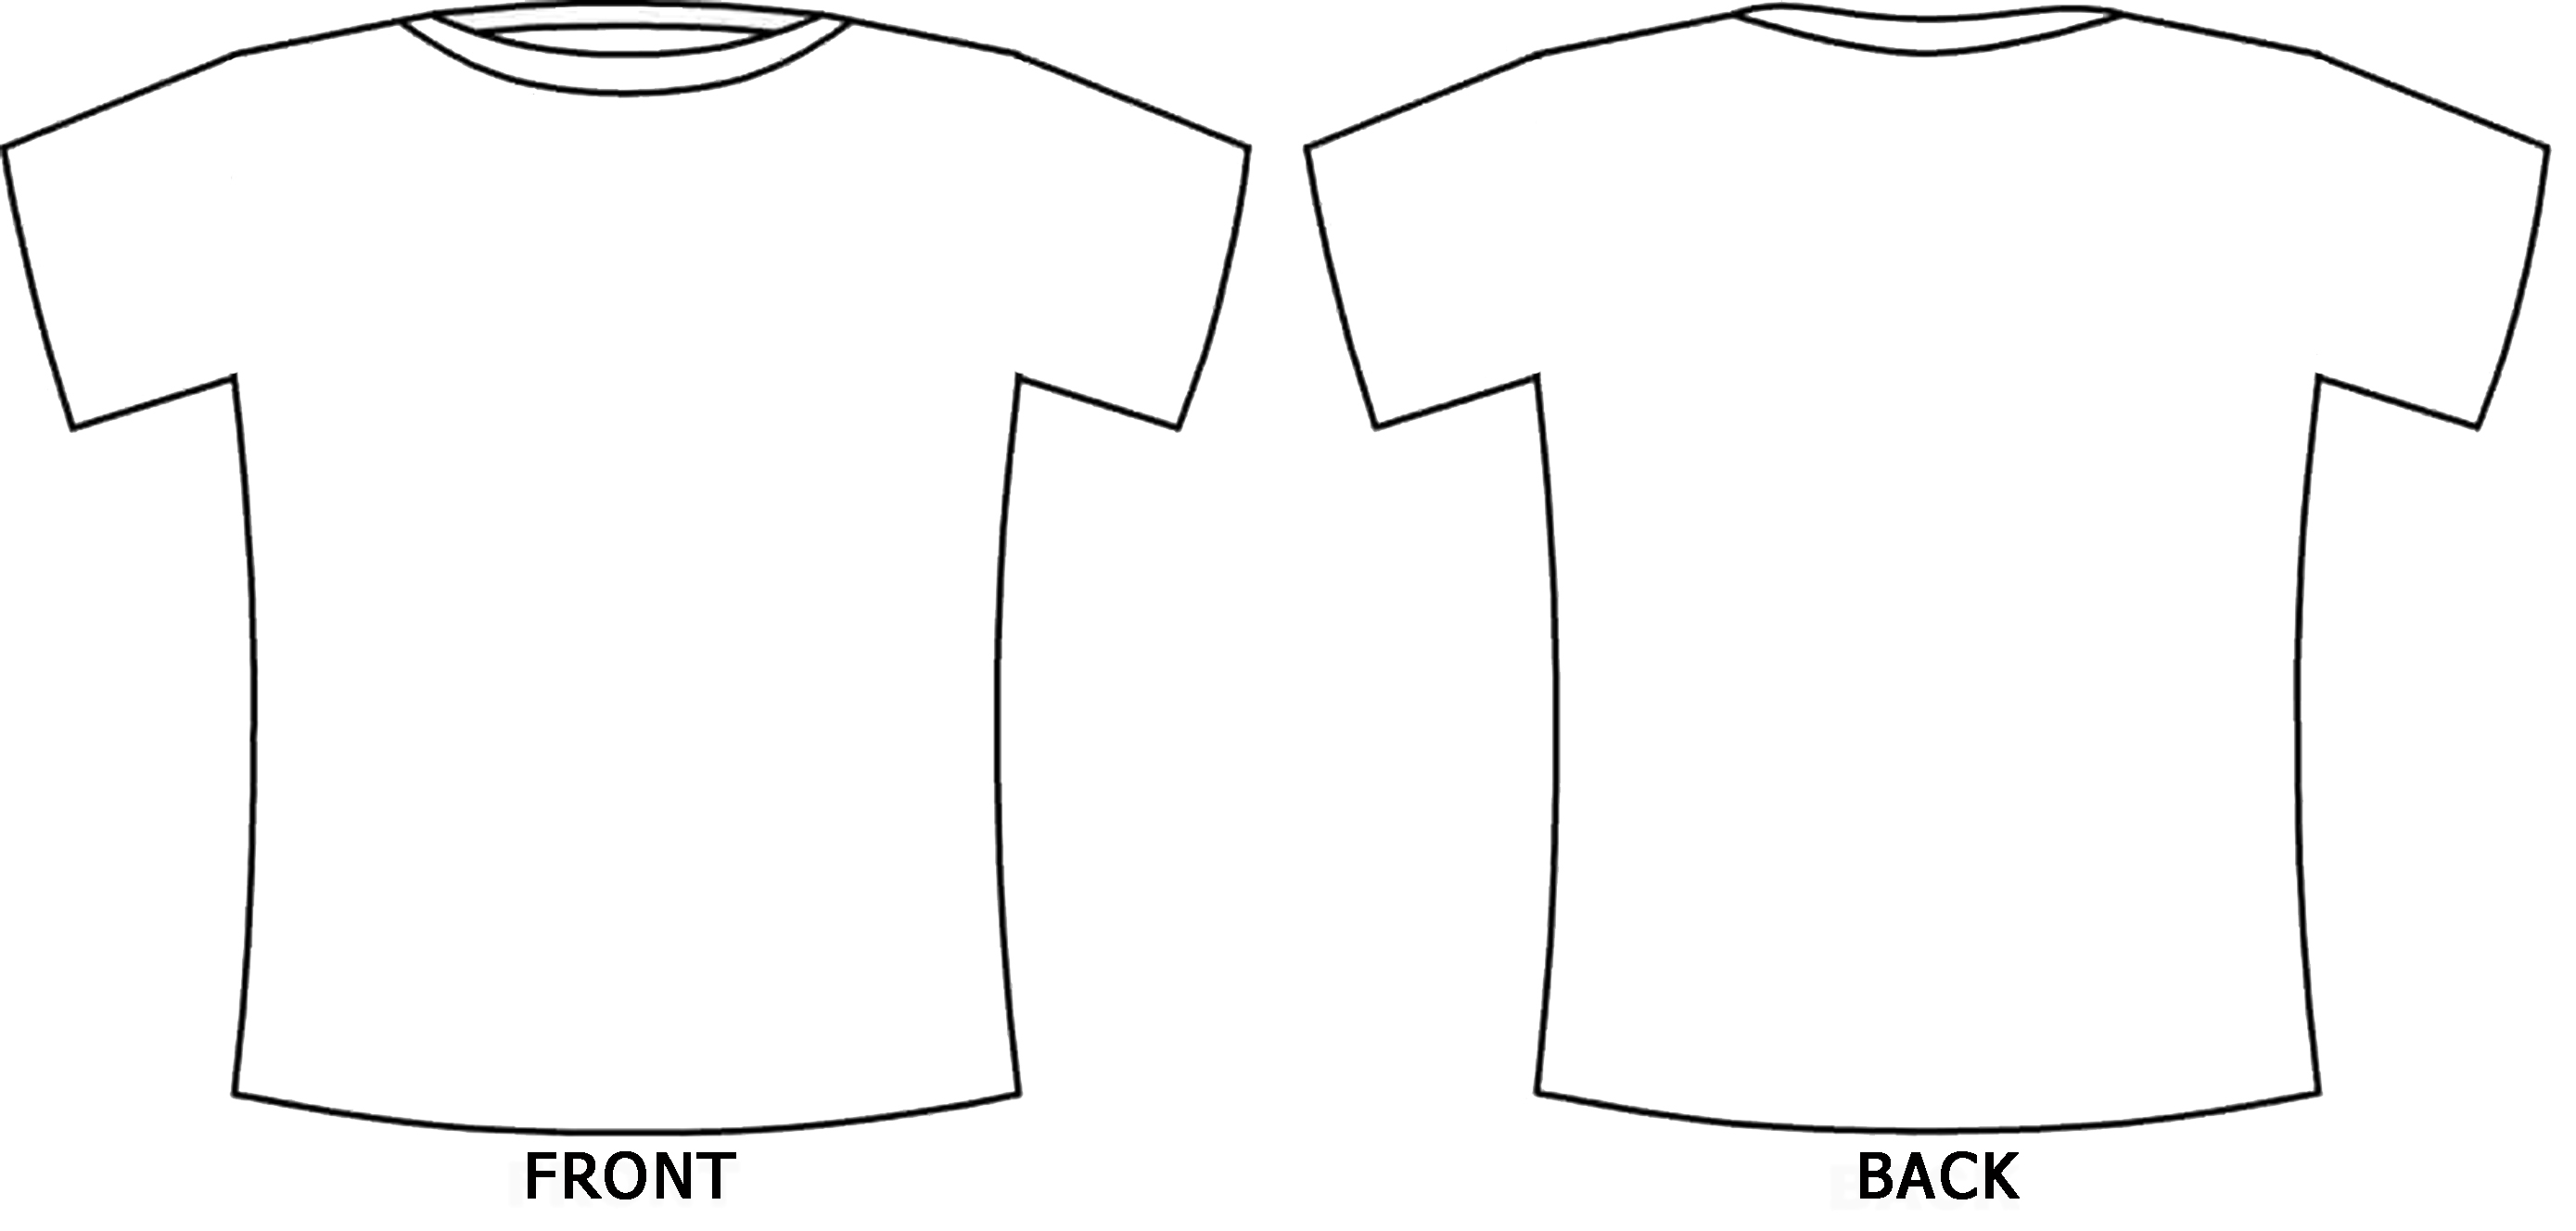 11 t shirt template front and back images t shirt for Design at shirt template